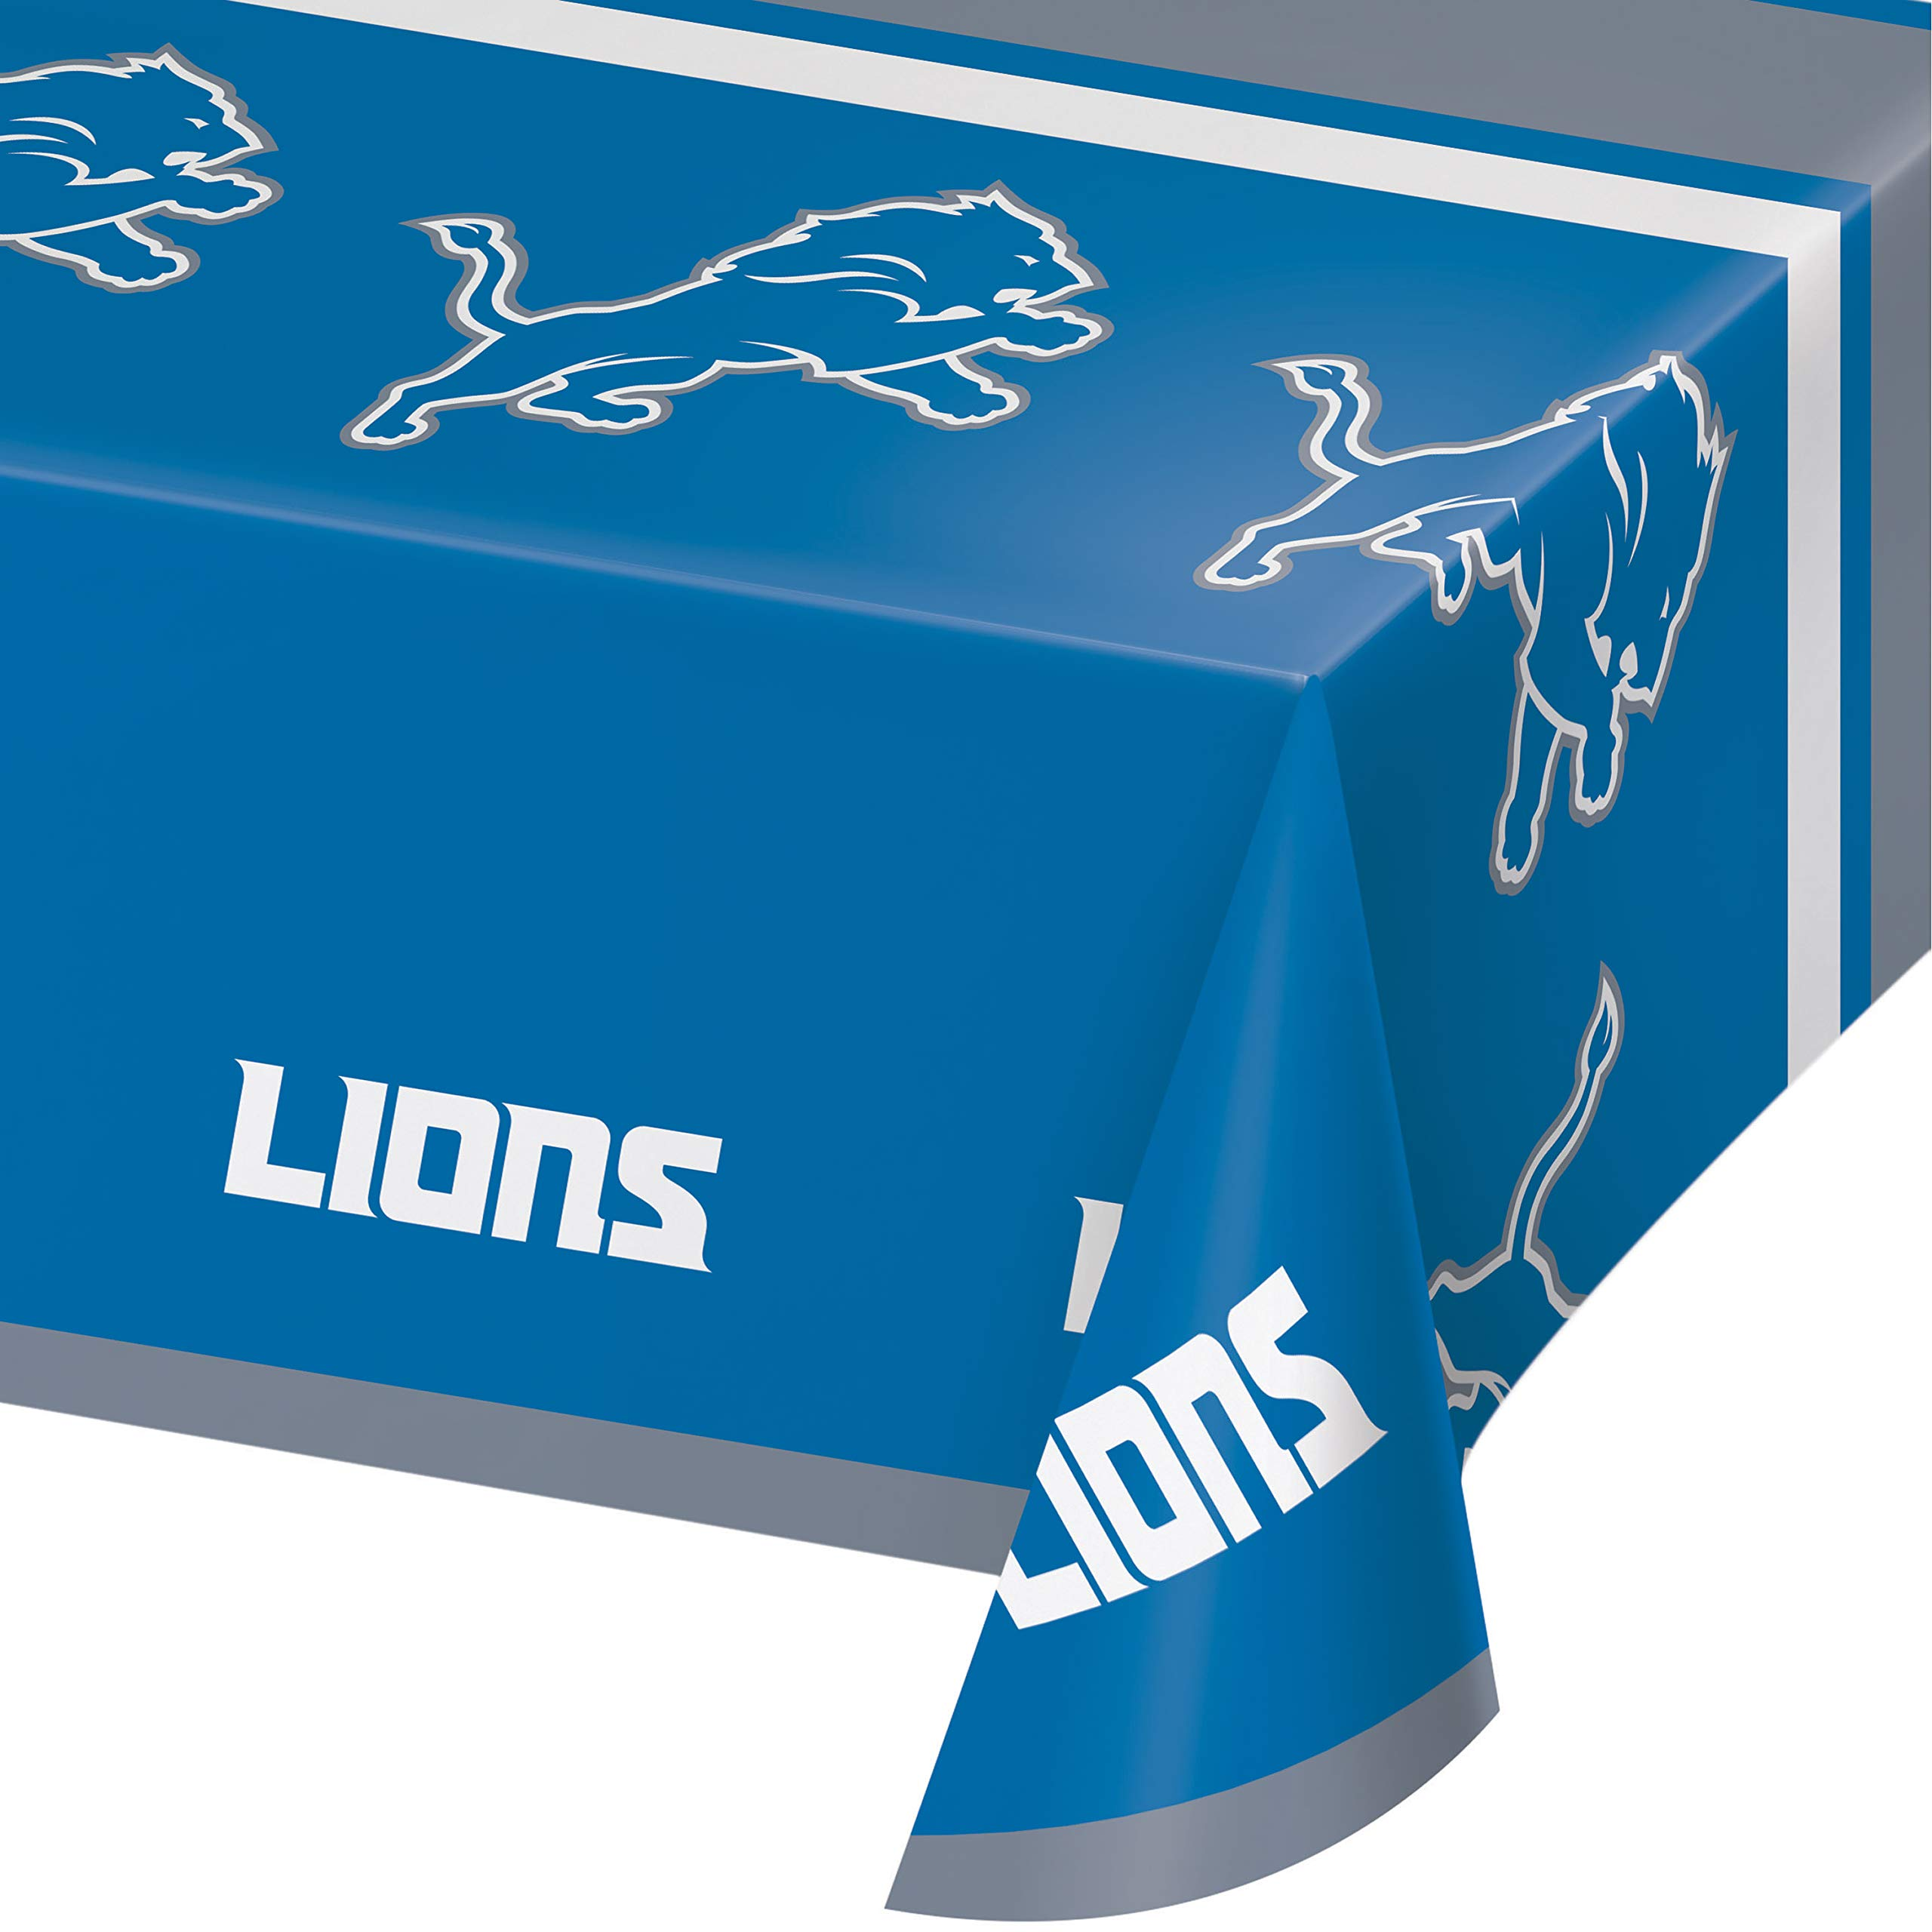 Detroit Lions Plastic Tablecloths, 3 ct by Creative Converting